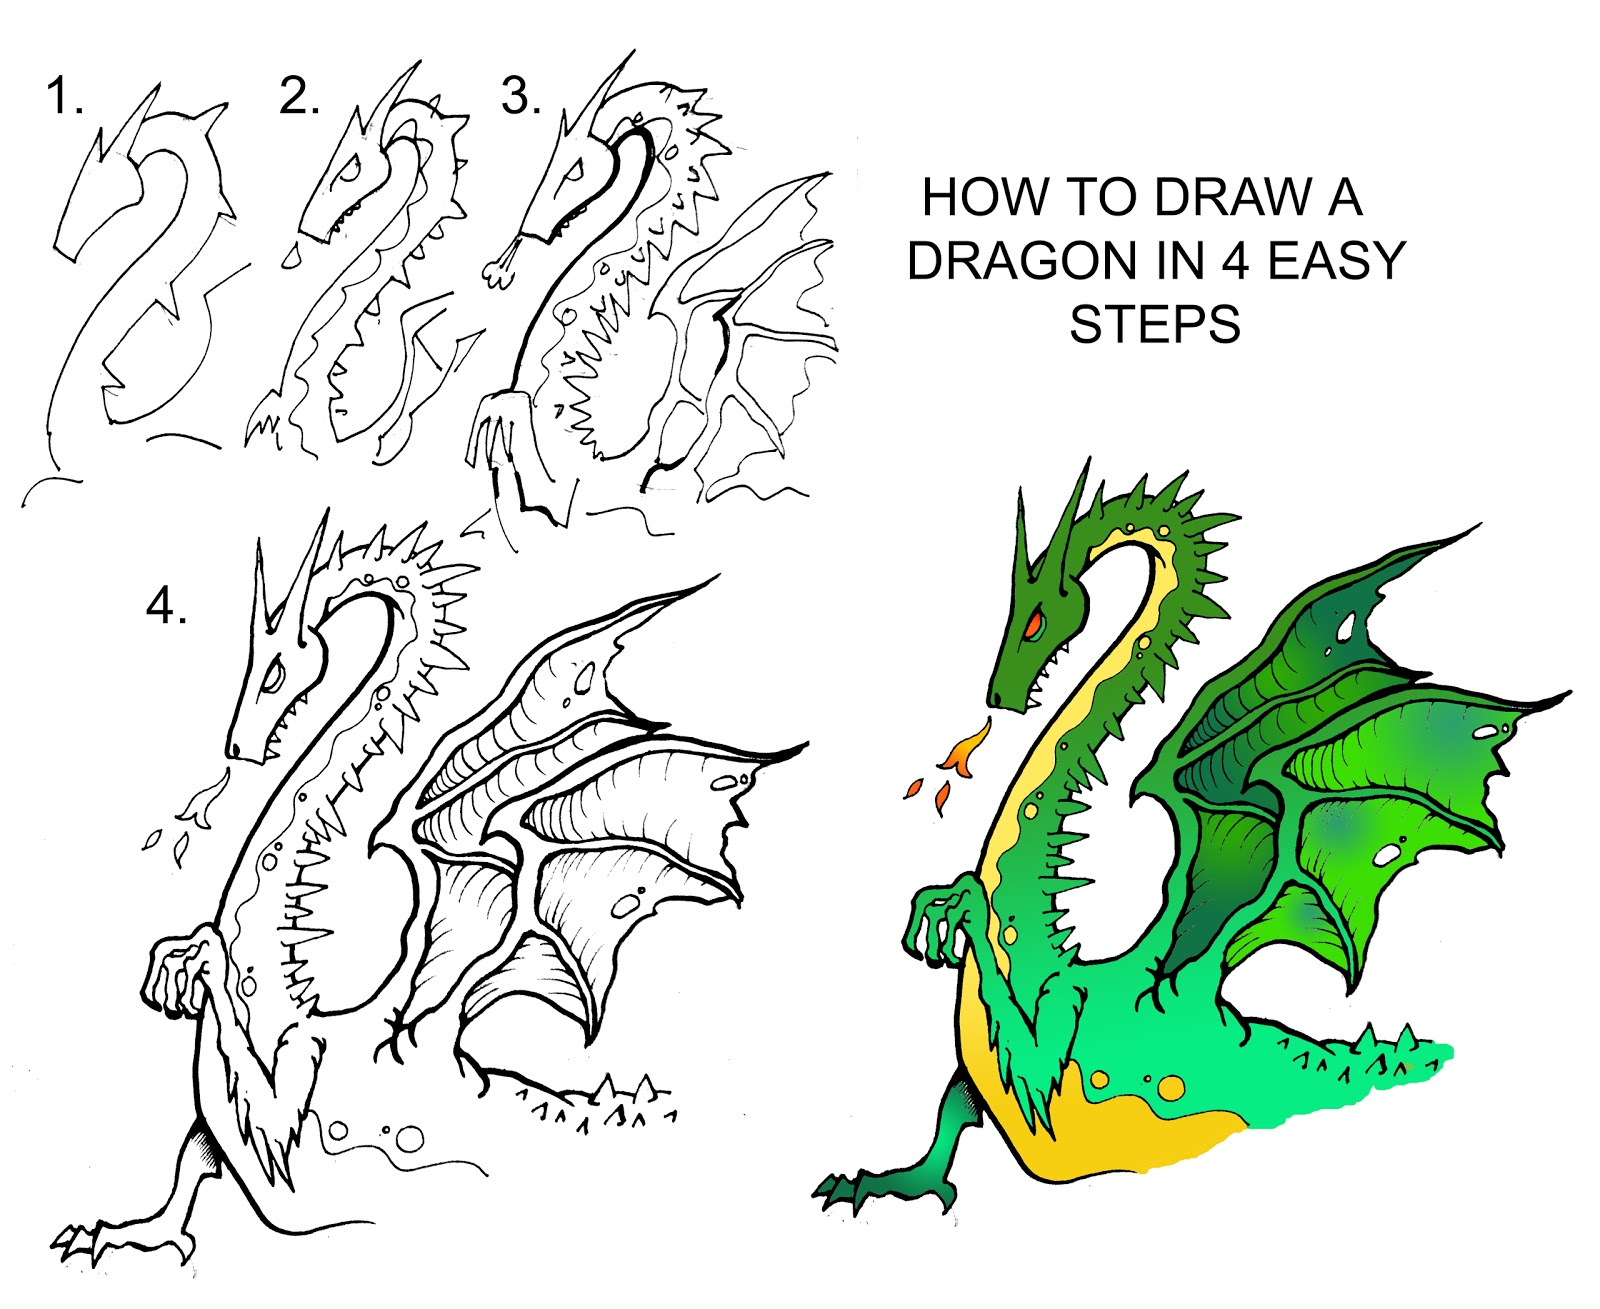 DARYL HOBSON ARTWORK: How To Draw A Dragon step by step